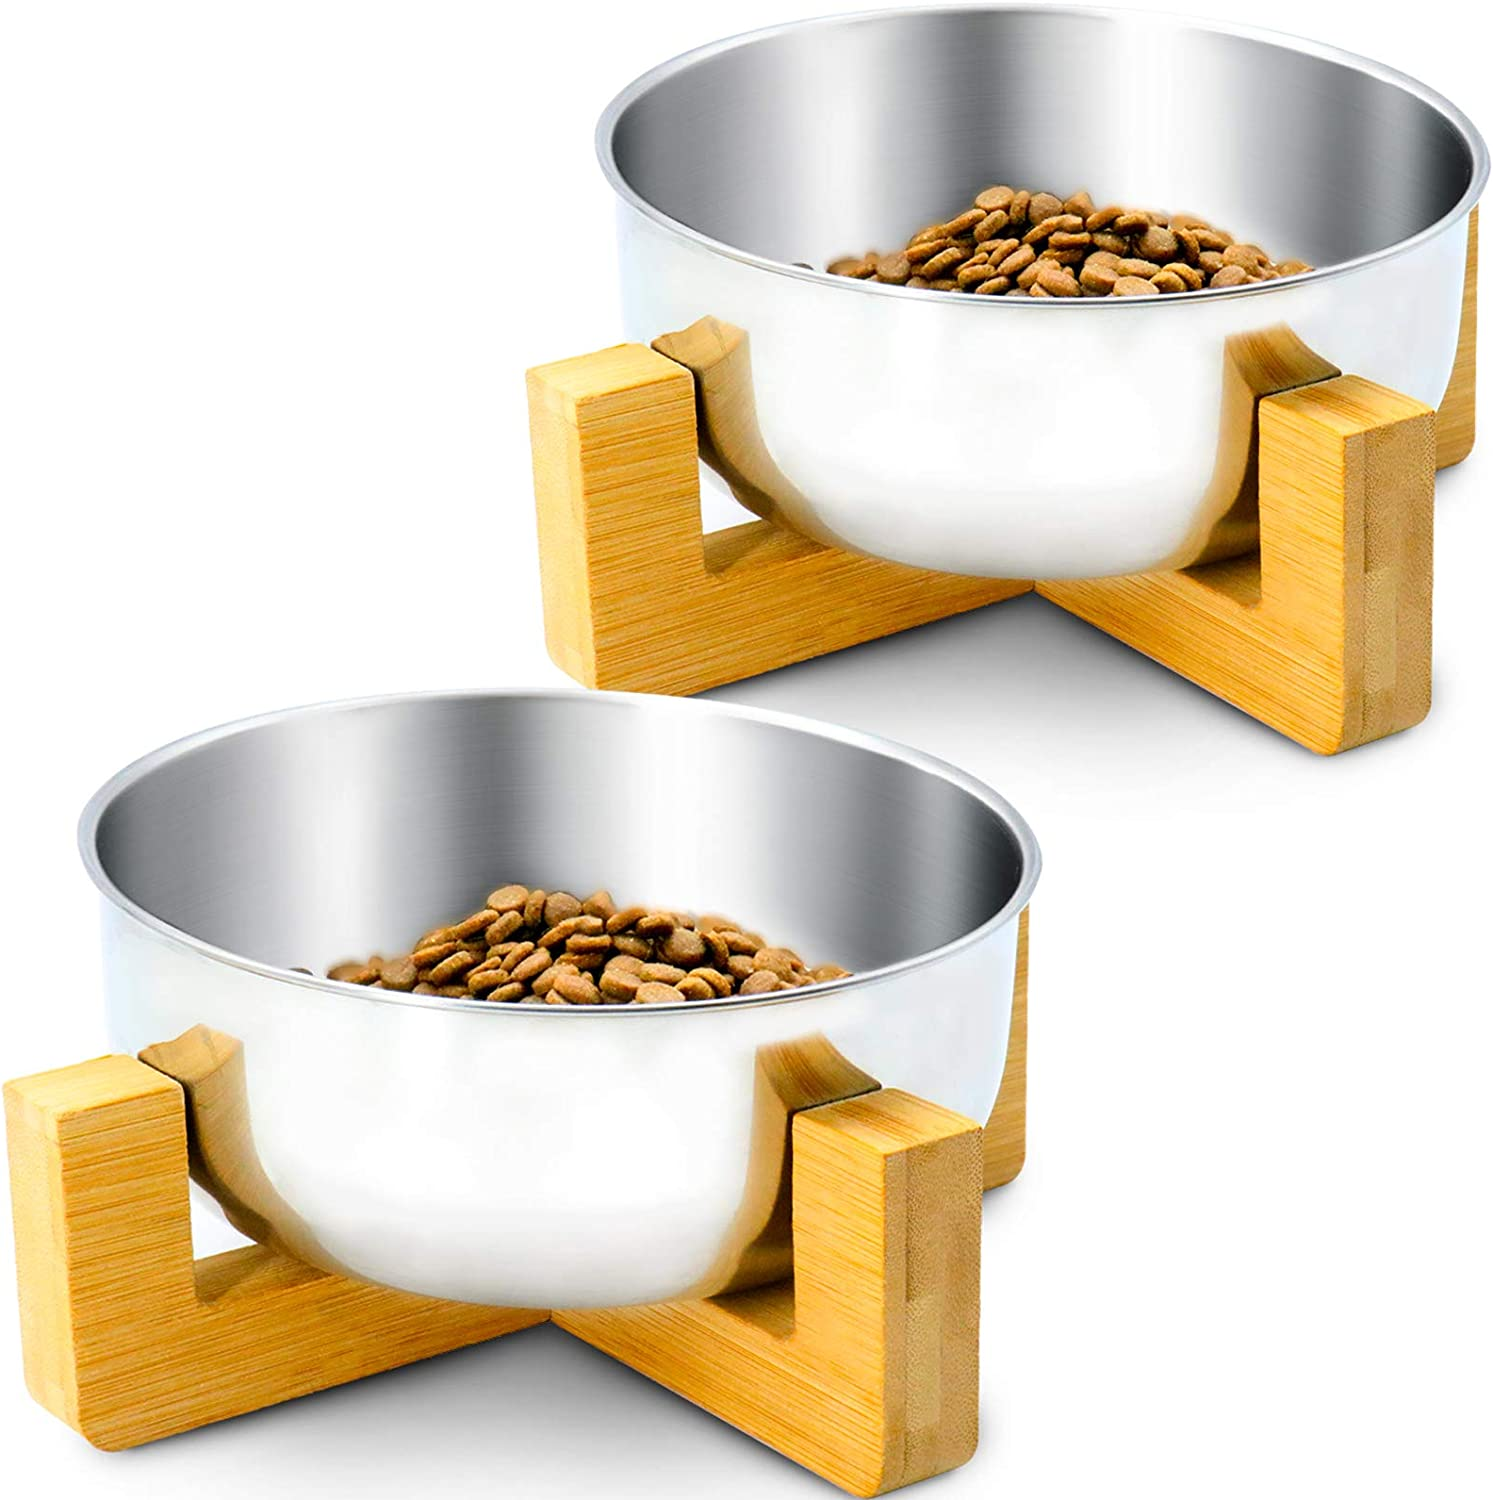 Three Capreolus 2 Pack Stainless Steel Dog Bowl Cat Food and Water Feeding Bowls Pet Bowls for Medium Small Dogs Cats with Stand Wood